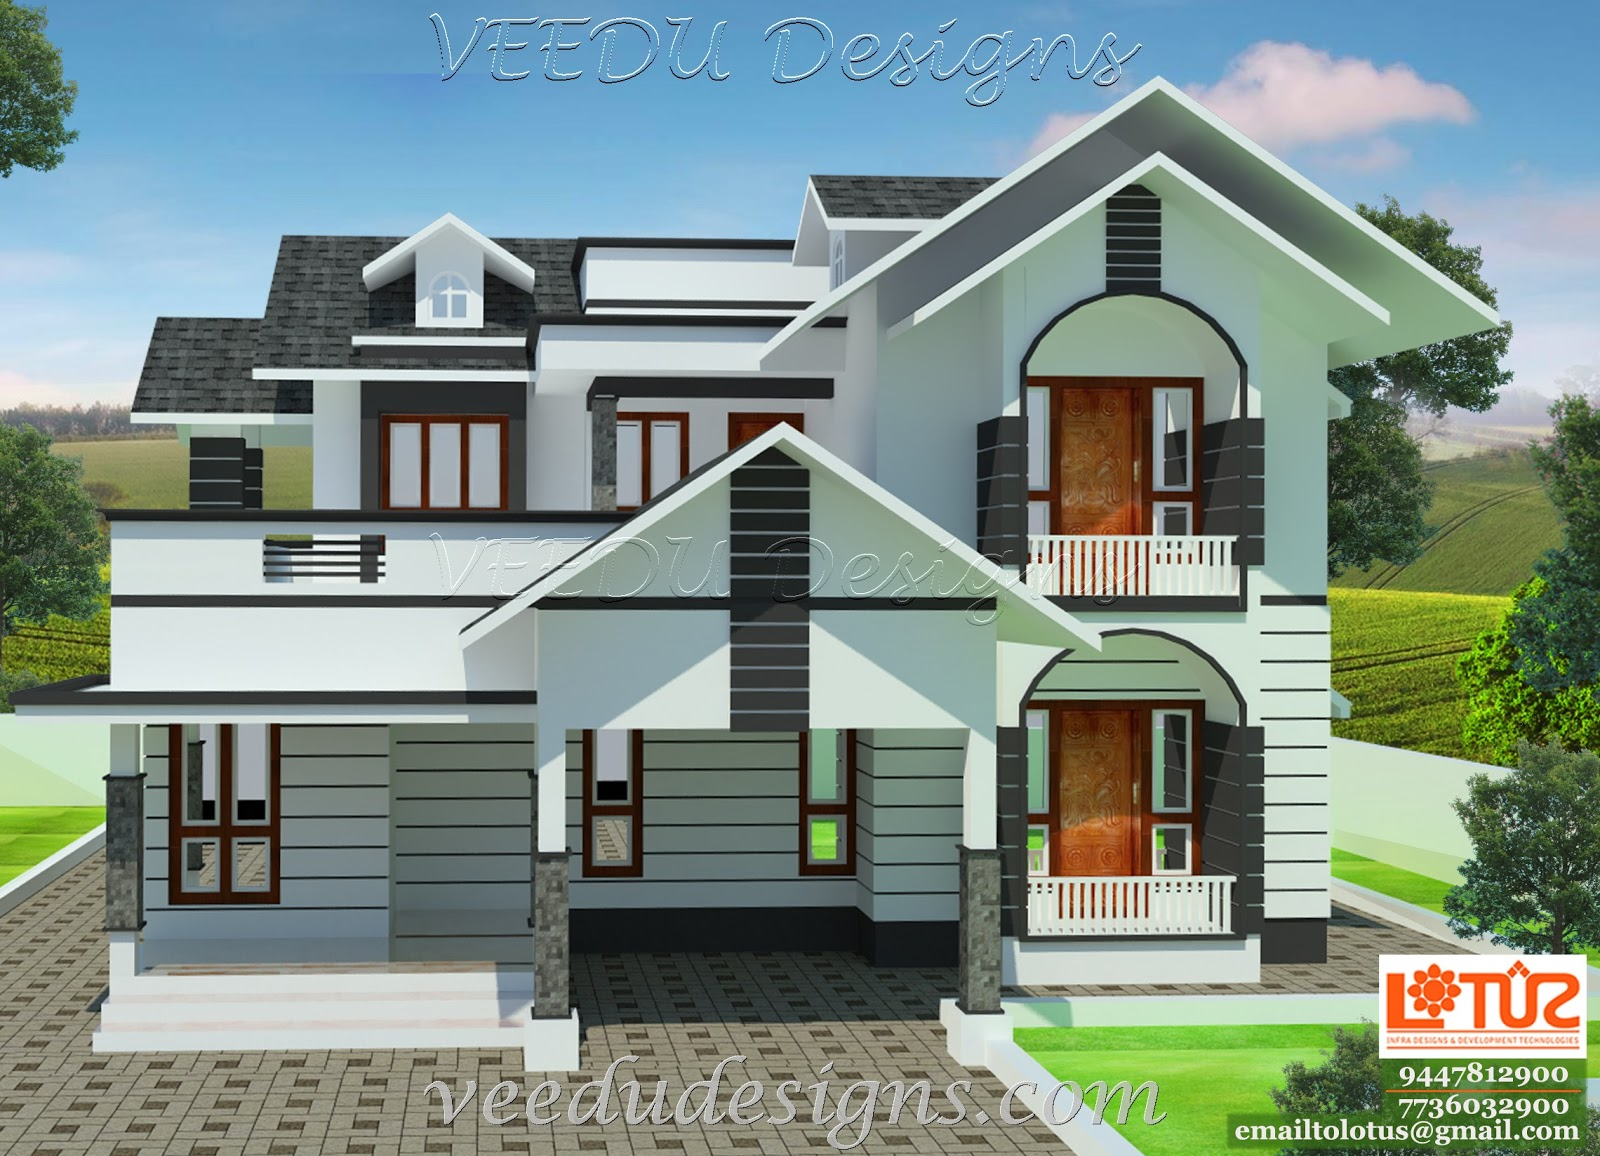 Veedu designs july 2015 for Home designs 2015